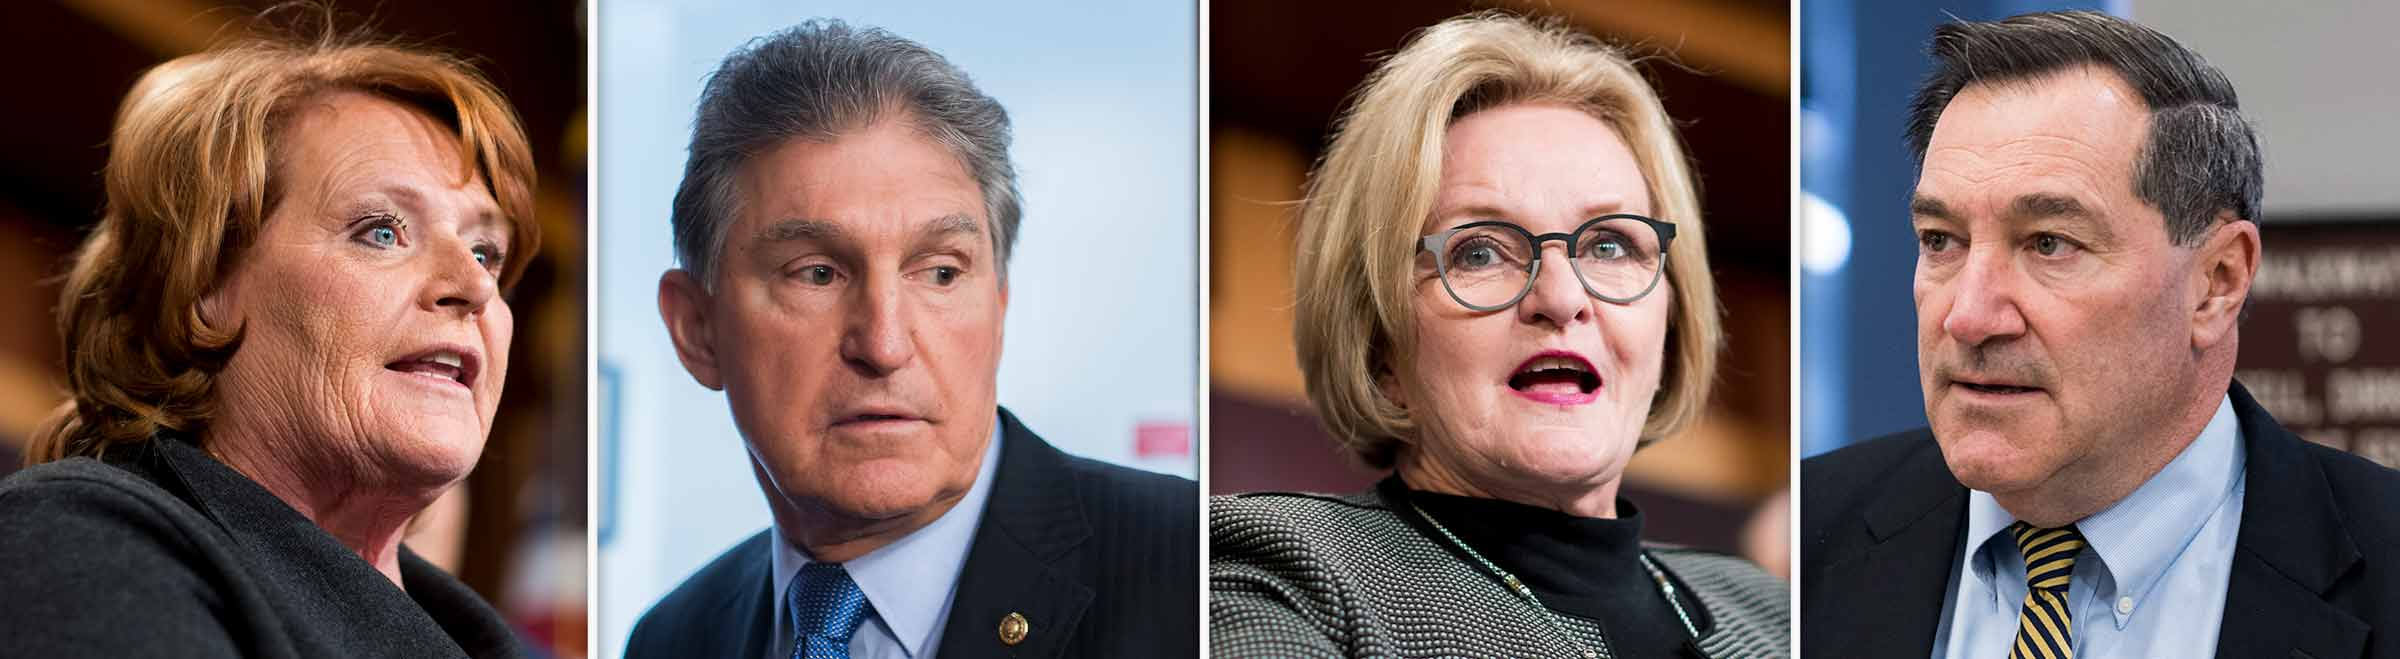 The four Senate Democrats in the toughest races at the moment — from left, Heidi Heitkamp, Claire McCaskill, Joe Manchin III and Joe Donnelly — are also the four who backed Trump most often during the first year of his presidency. (Bill Clark and Tom Williams/CQ Roll Call file photos)